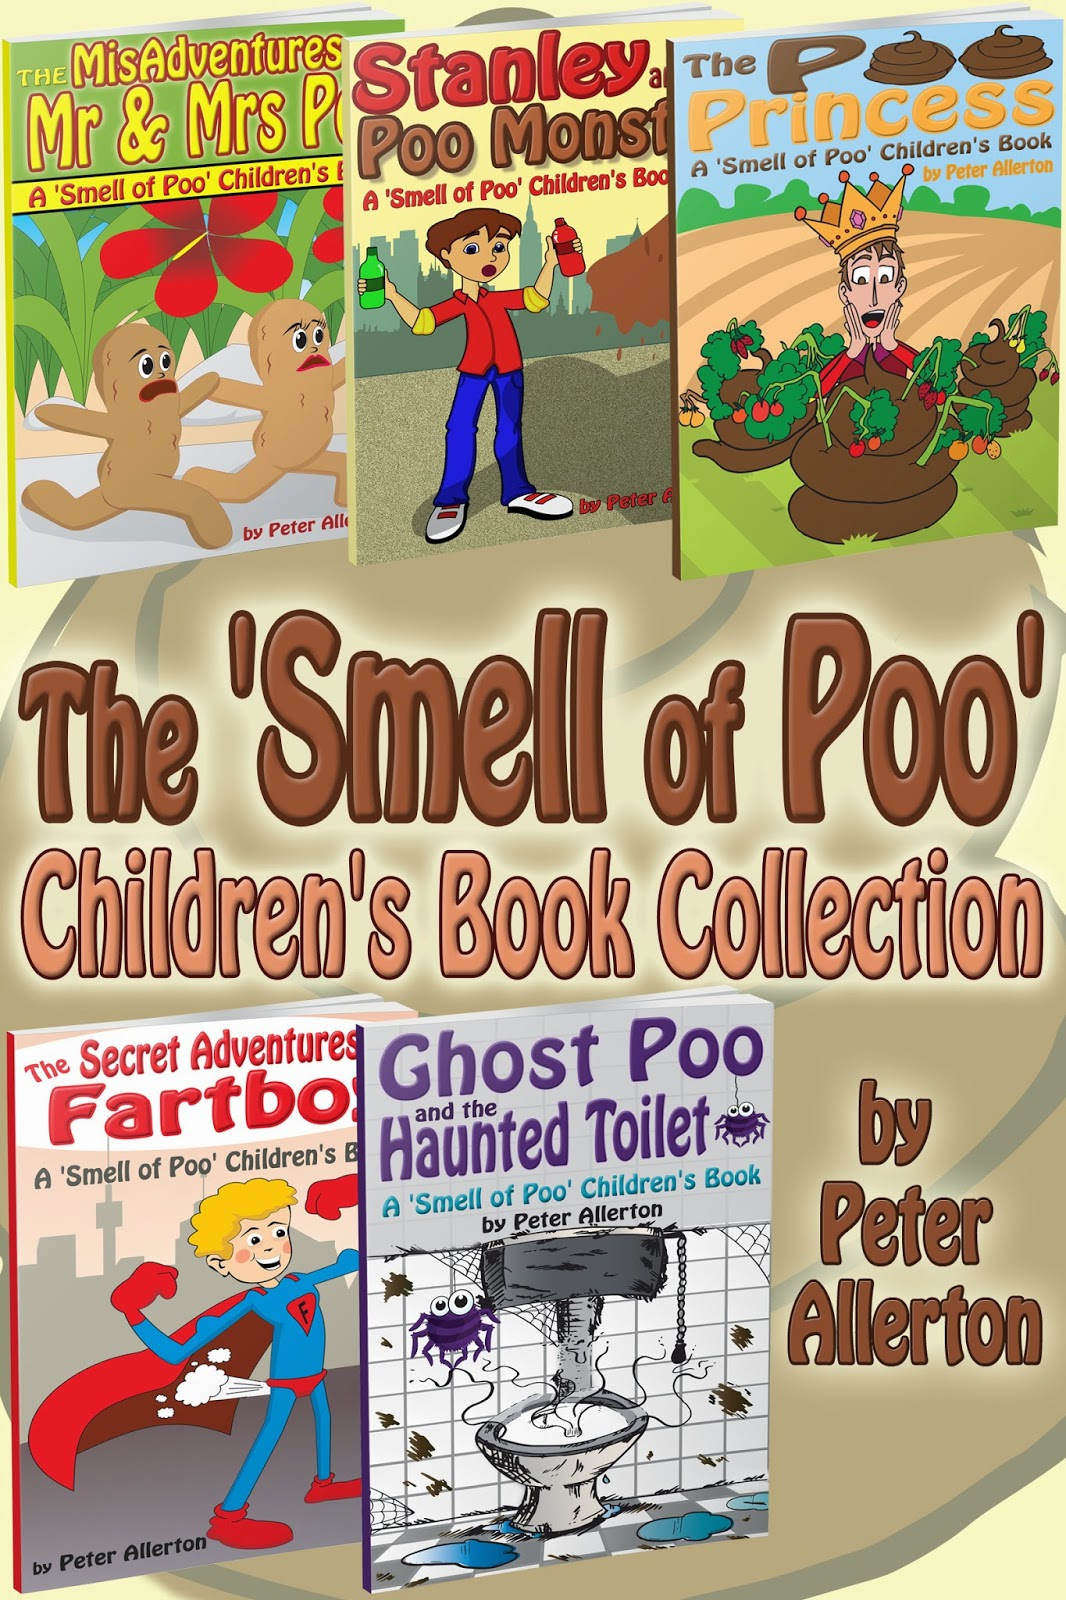 'The Smell of Poo' poems: 'Your Poo & You' + 'Who Dunnit?'